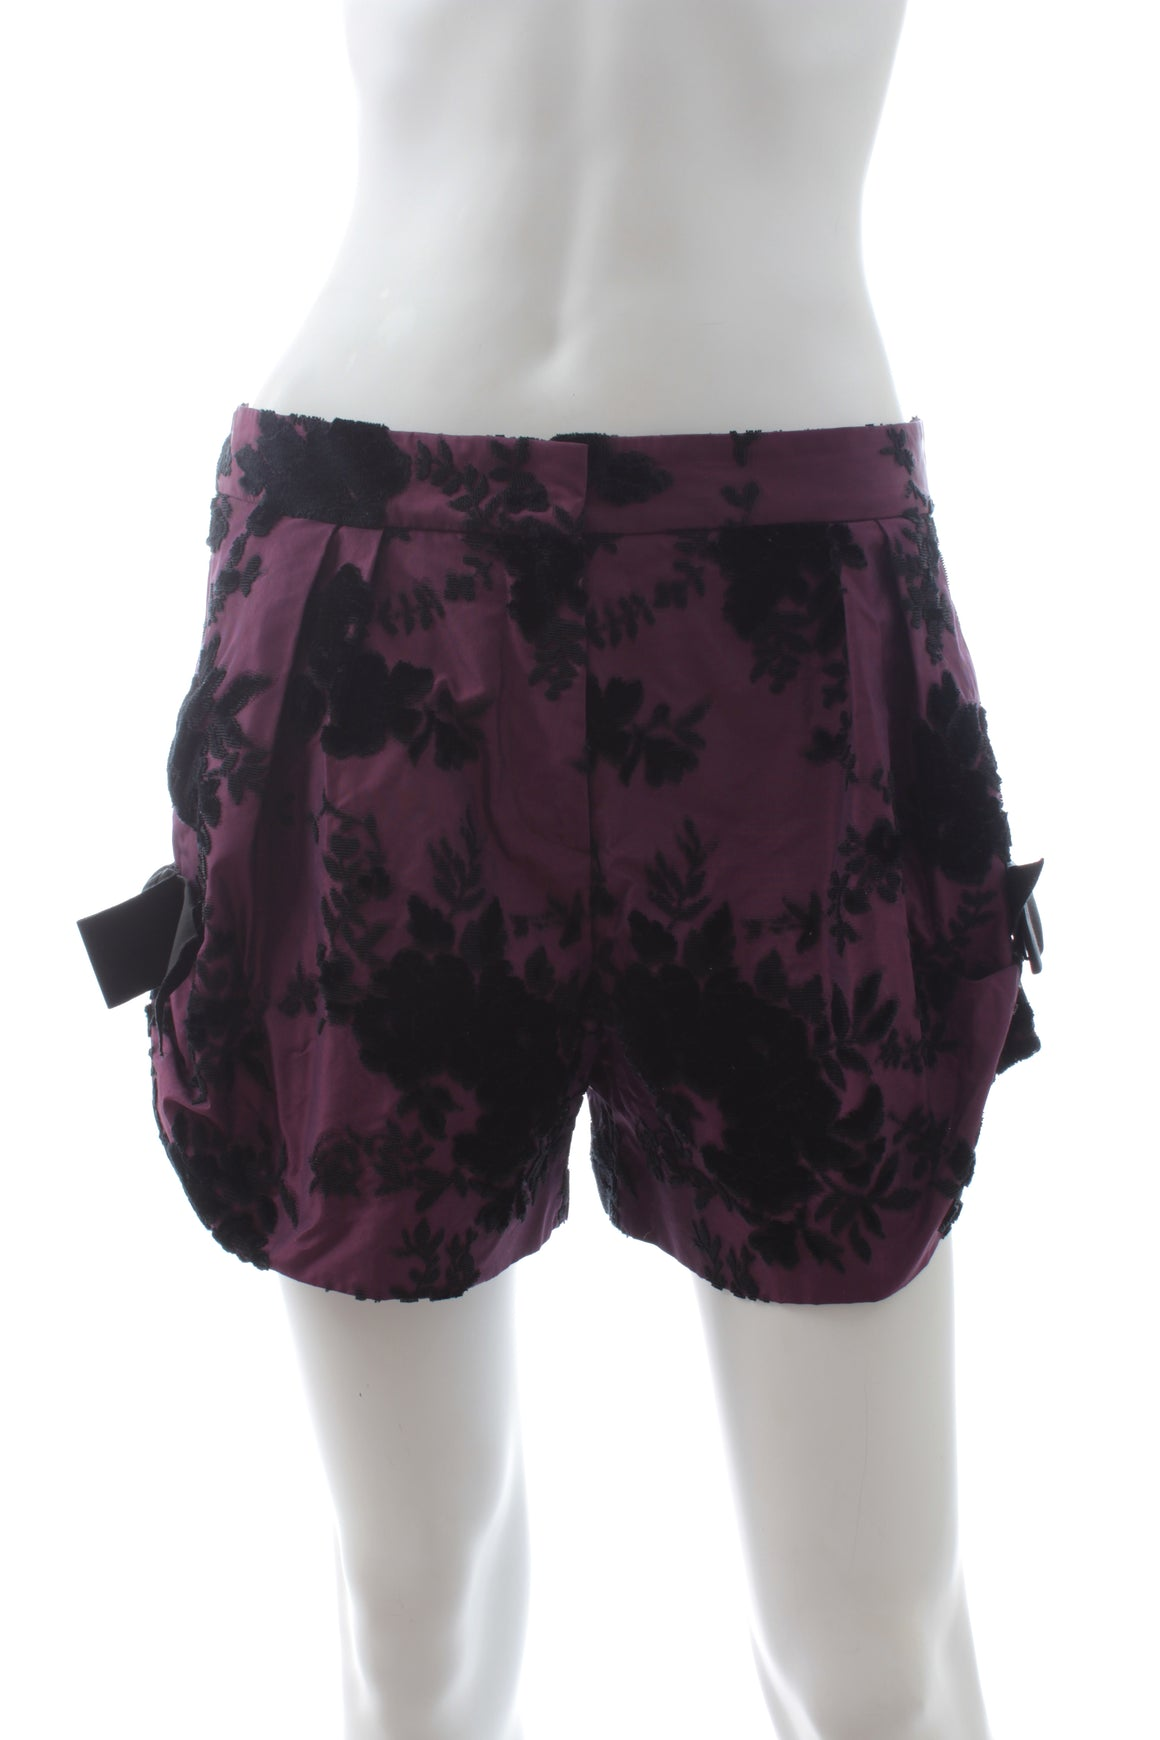 Christian Dior Silk Jacquard Shorts